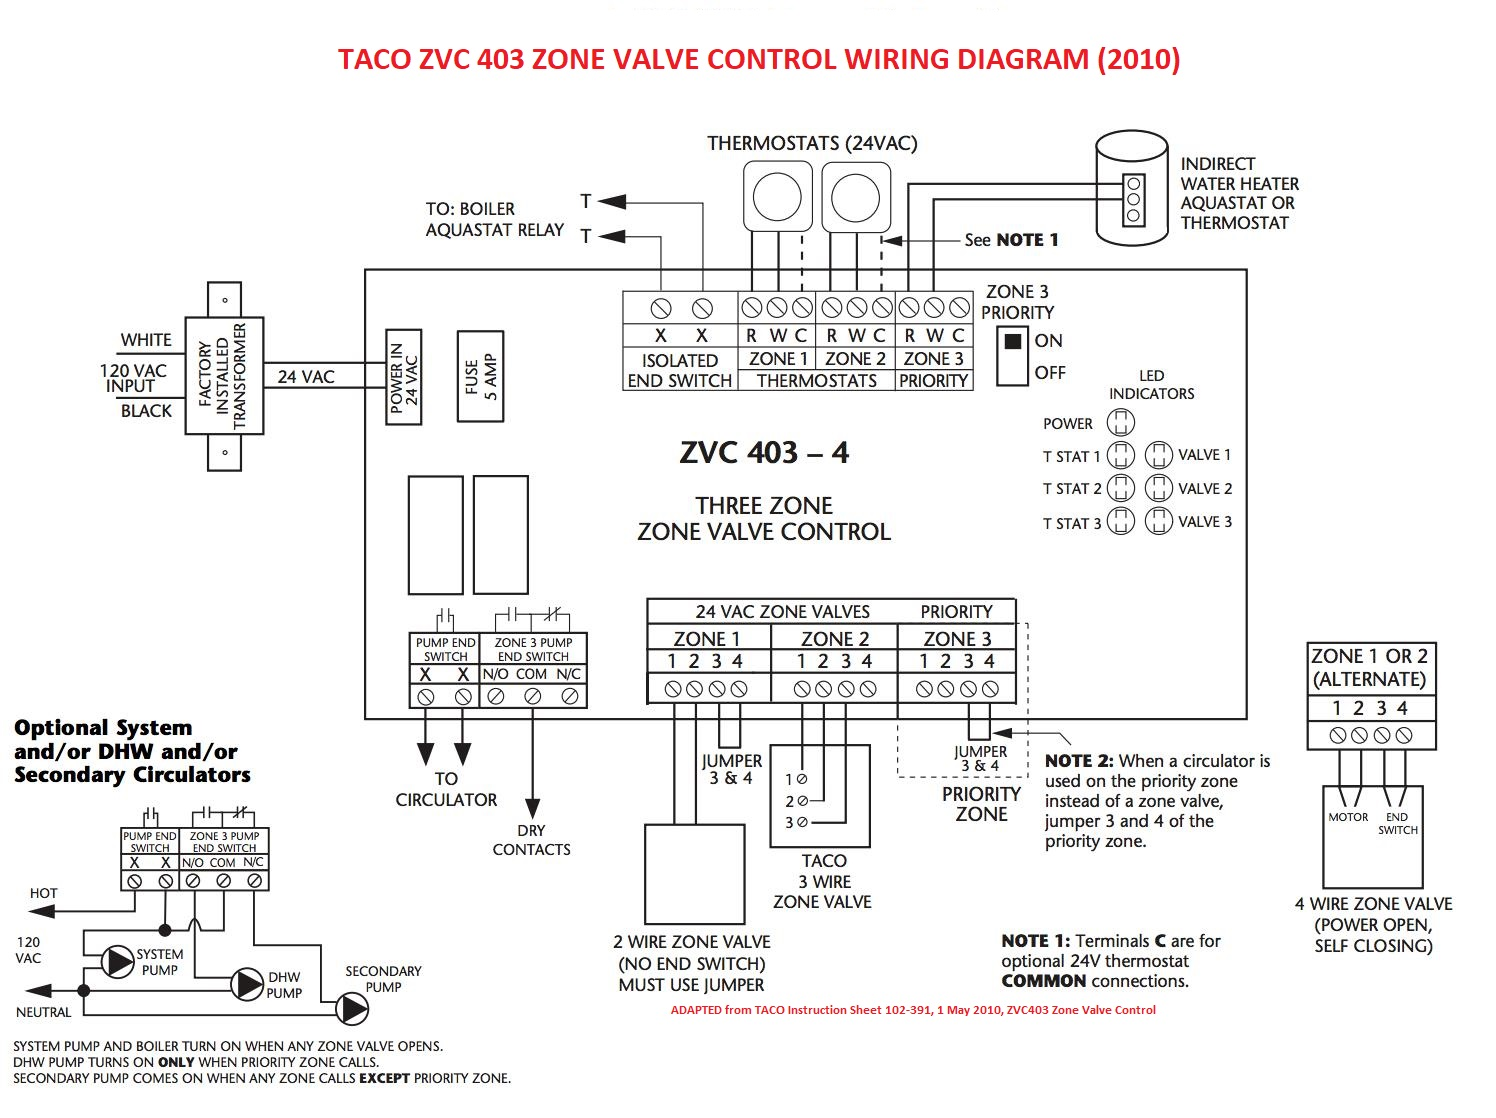 Zone valve wiring installation instructions guide to heating taci zvc493 wiring diagram click to enlarge at inspectapedia individual hydronic heating zone valve asfbconference2016 Gallery